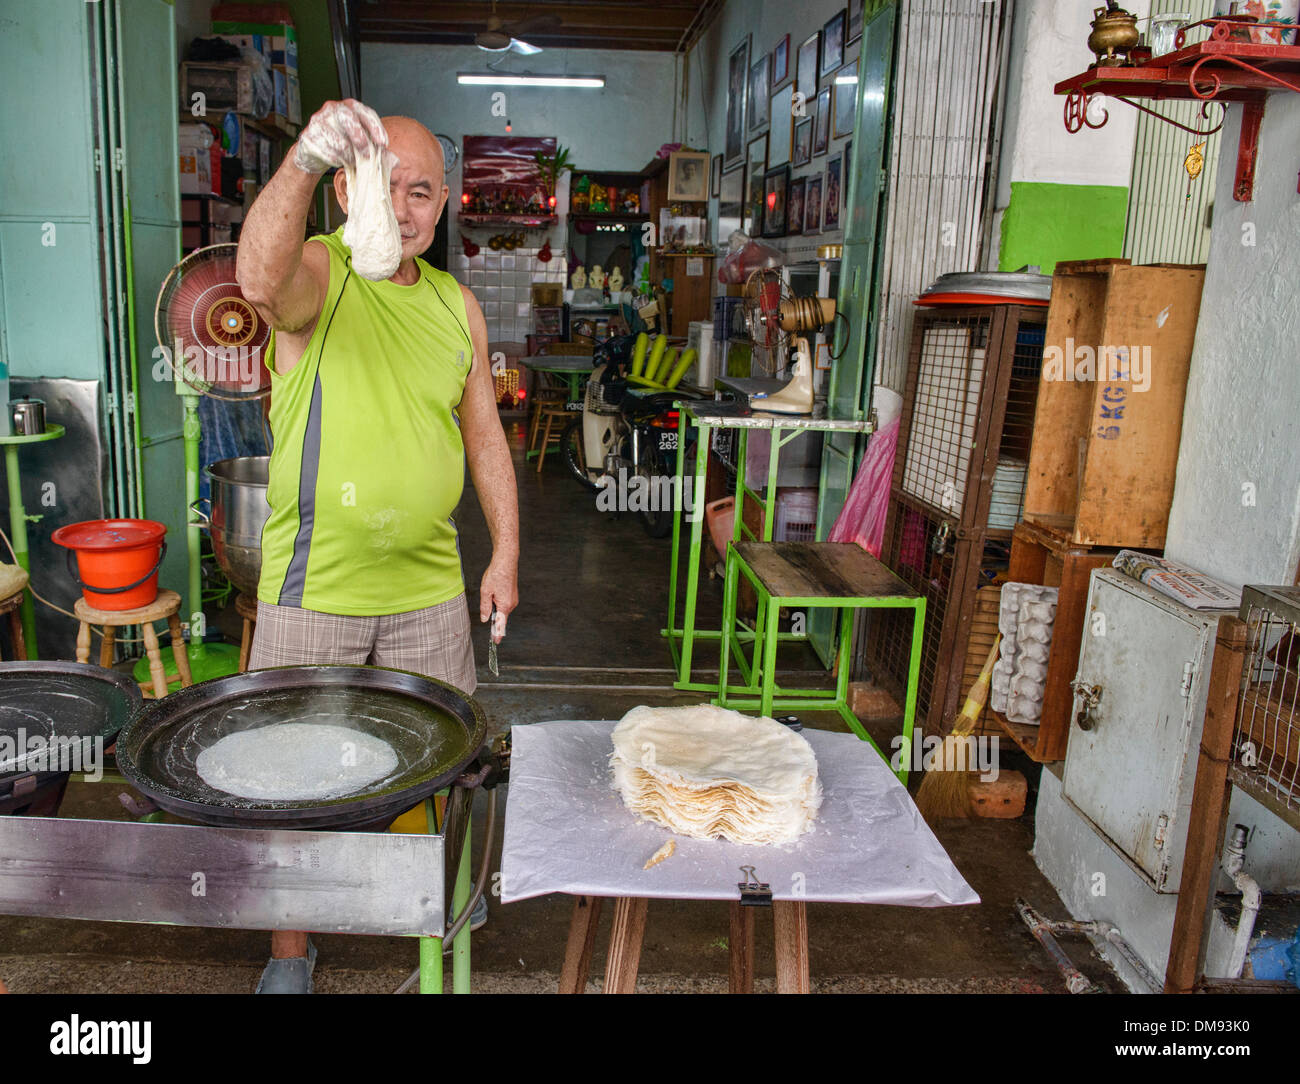 Uncle Popiah, longtime famous popiah dough maker in Georgetown in Penang, Malaysia - Stock Image